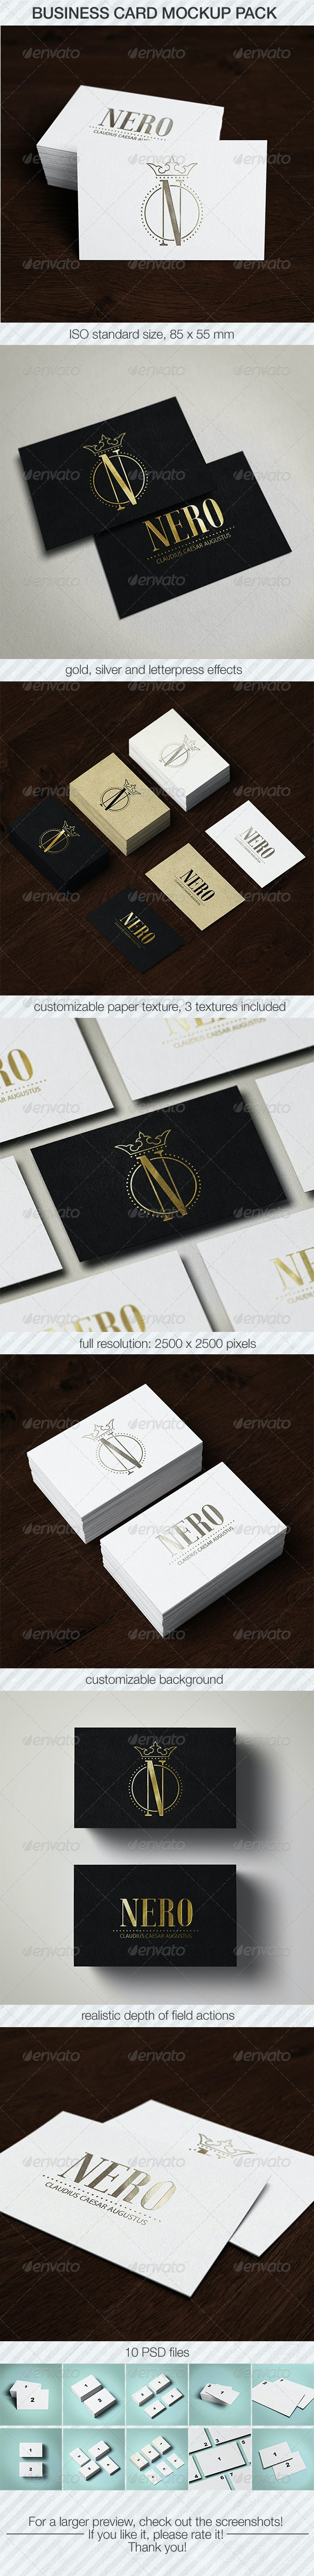 Business Card Mockup Pack - Business Cards Print